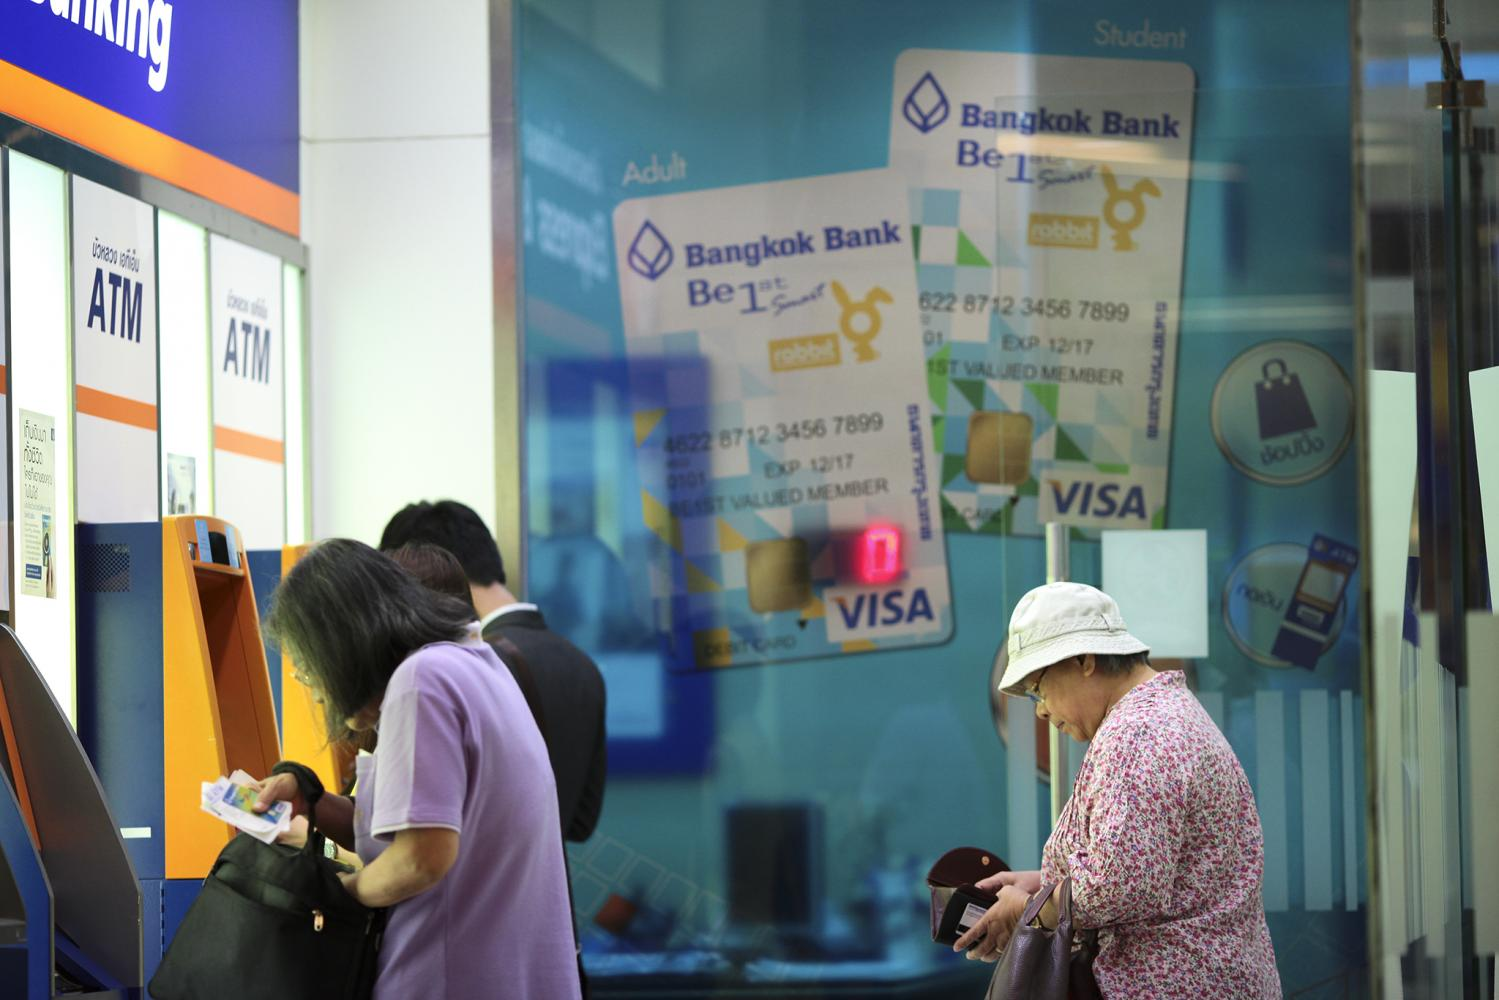 Customers use ATMs at a Bangkok Bank branch in the Rama IX area. Banks have waived fees for customers to ease their financial burden. (Photo by Patipat Janthong)